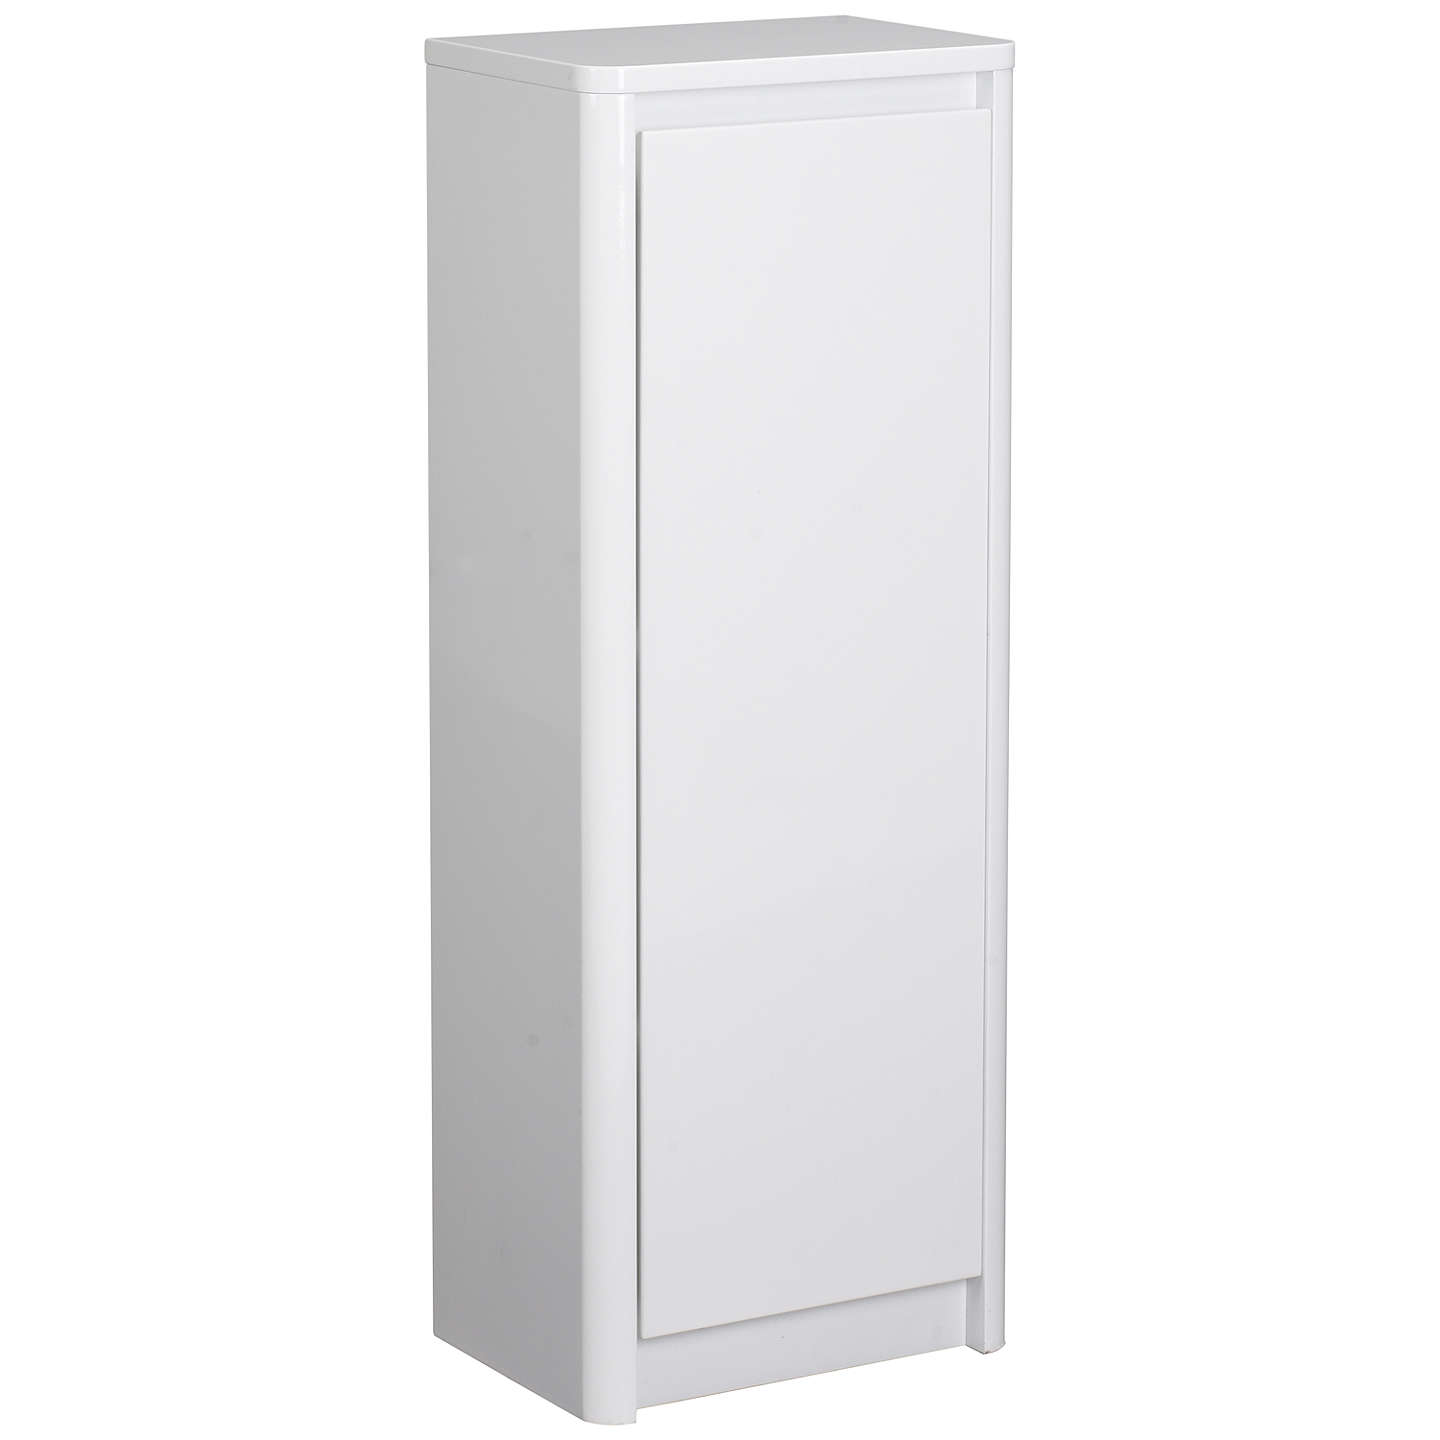 Free Standing Kitchen Cabinets John Lewis: John Lewis Gloss Curve Free Standing Bathroom Floor